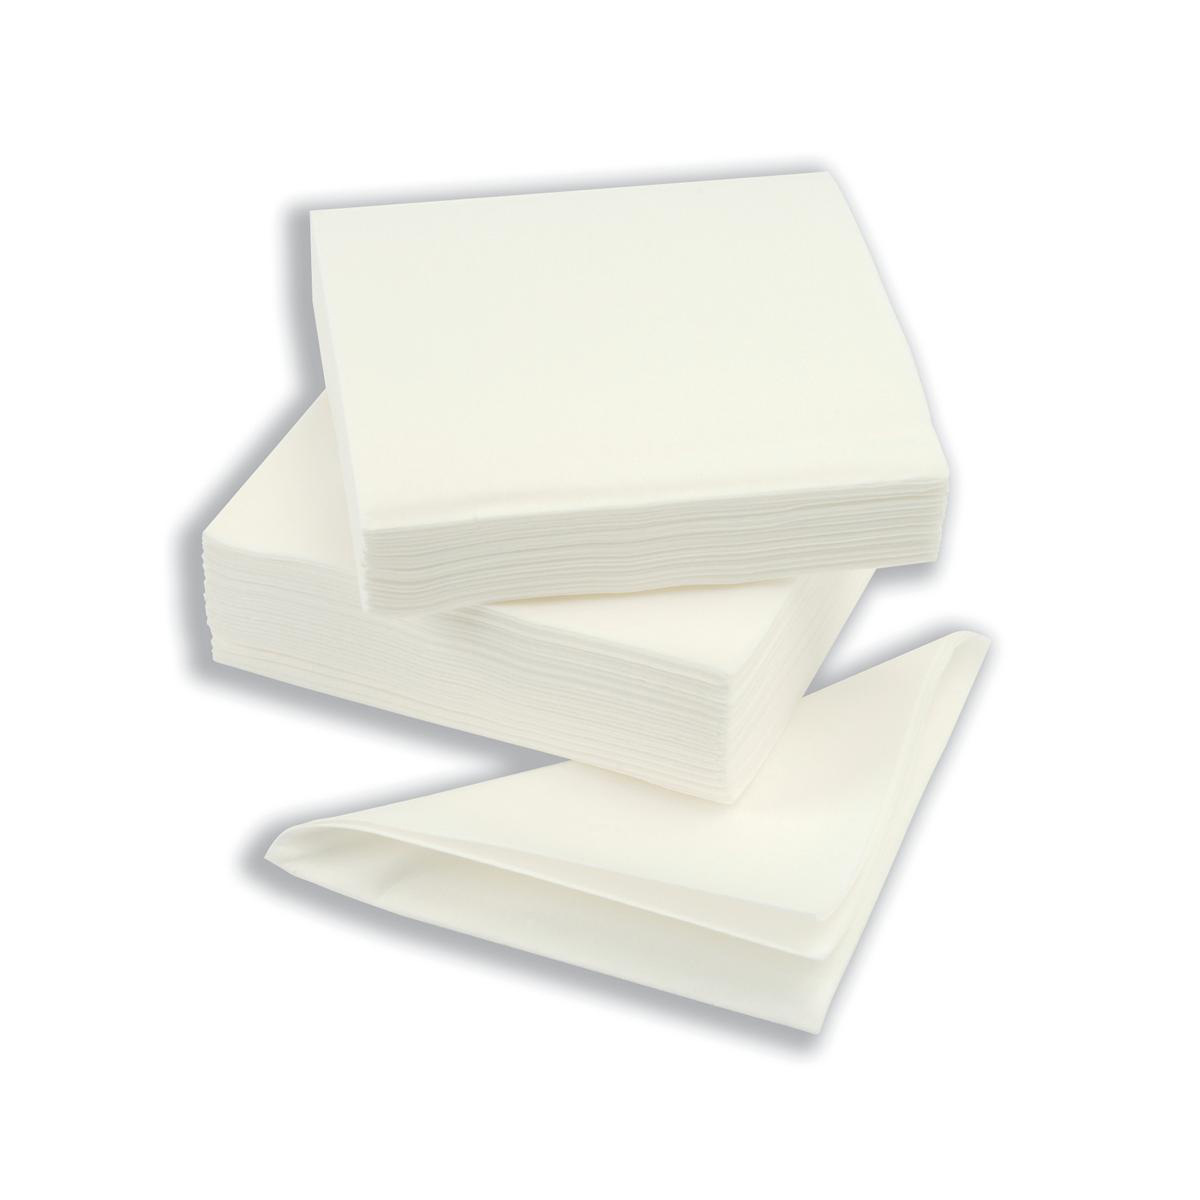 Napkin High Quality Single Ply 390x390mm White Ref D04457 Pack 600